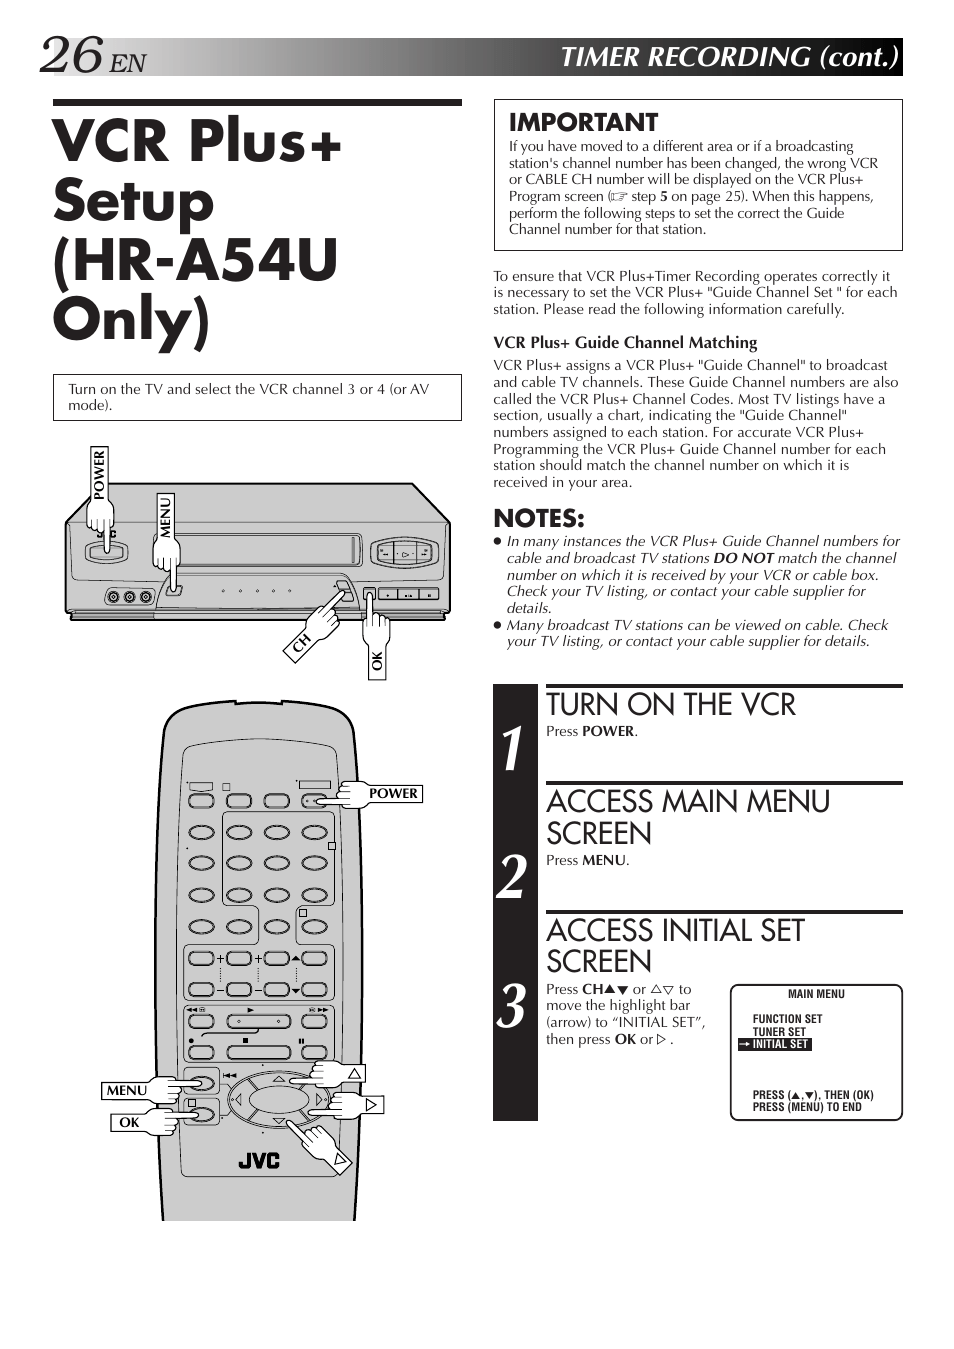 Vcr plus+ setup (hr-a54u only), Turn on the vcr, Access